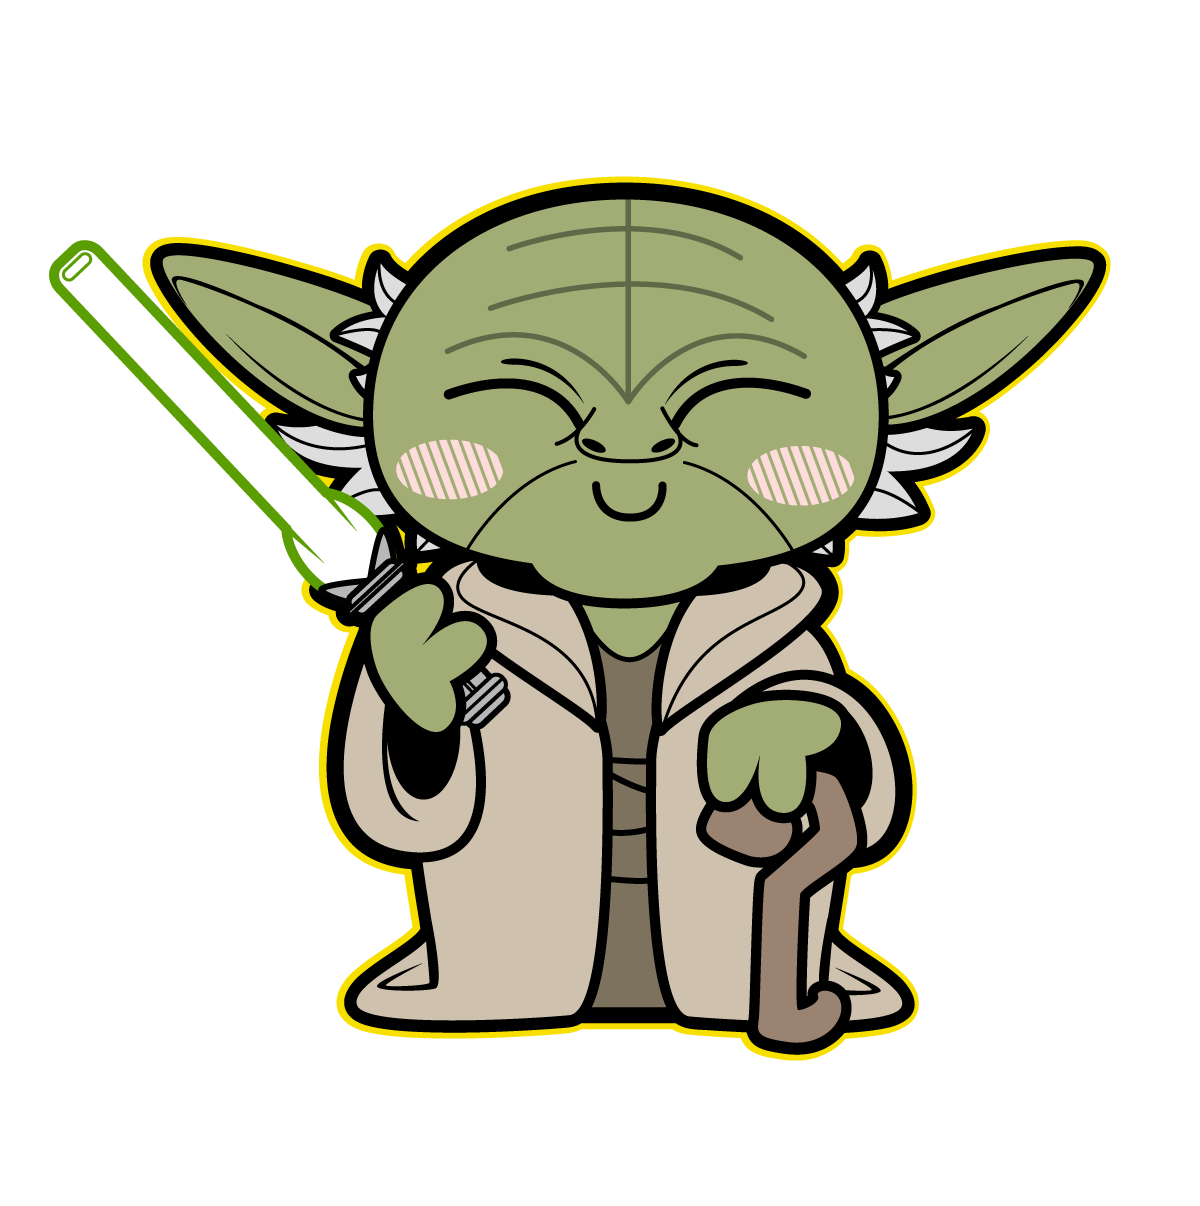 Star wars family decals clipart png freeuse library yoda | TieFighters | Star Wars | Pinterest | Star, Starwars and Chibi png freeuse library